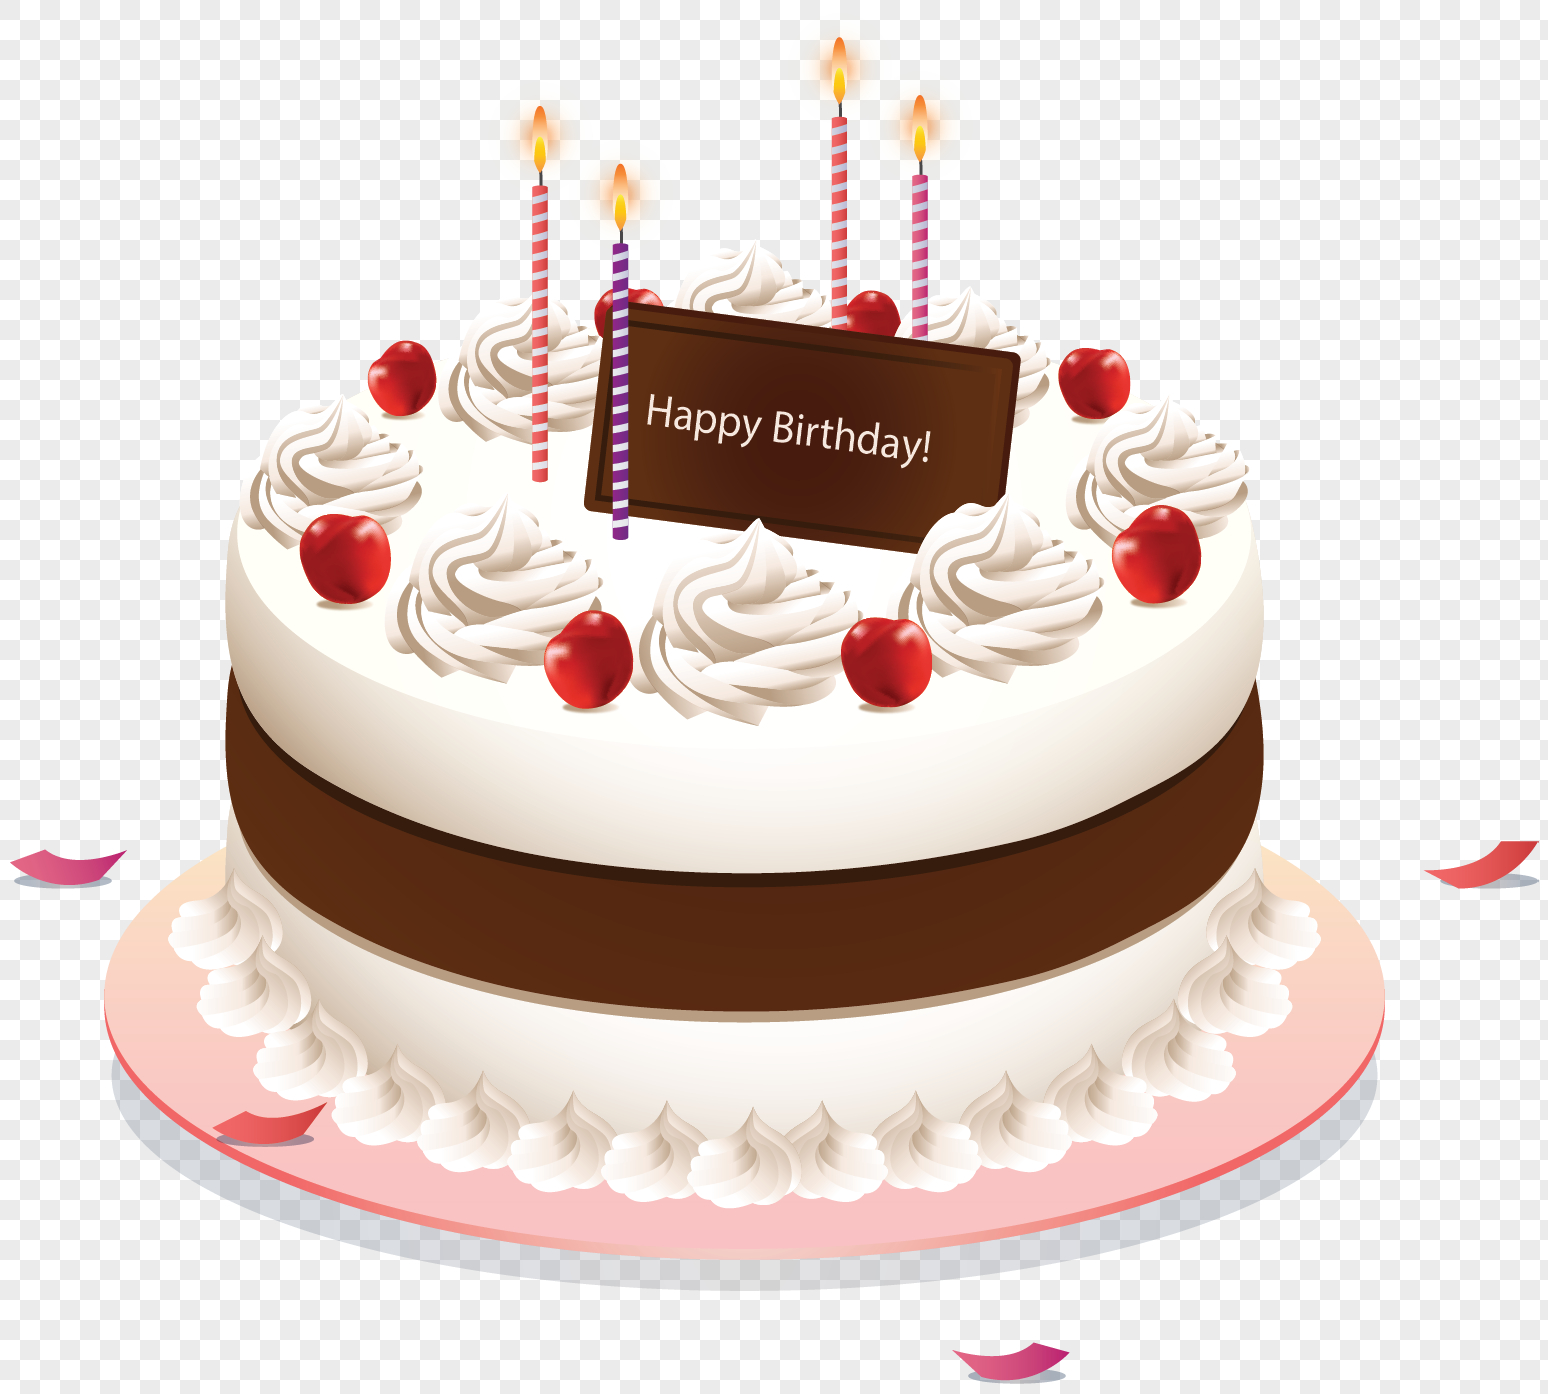 Birthday Cake Images Free Download White Cream Birthday Cake Png Imagepicture Free Download